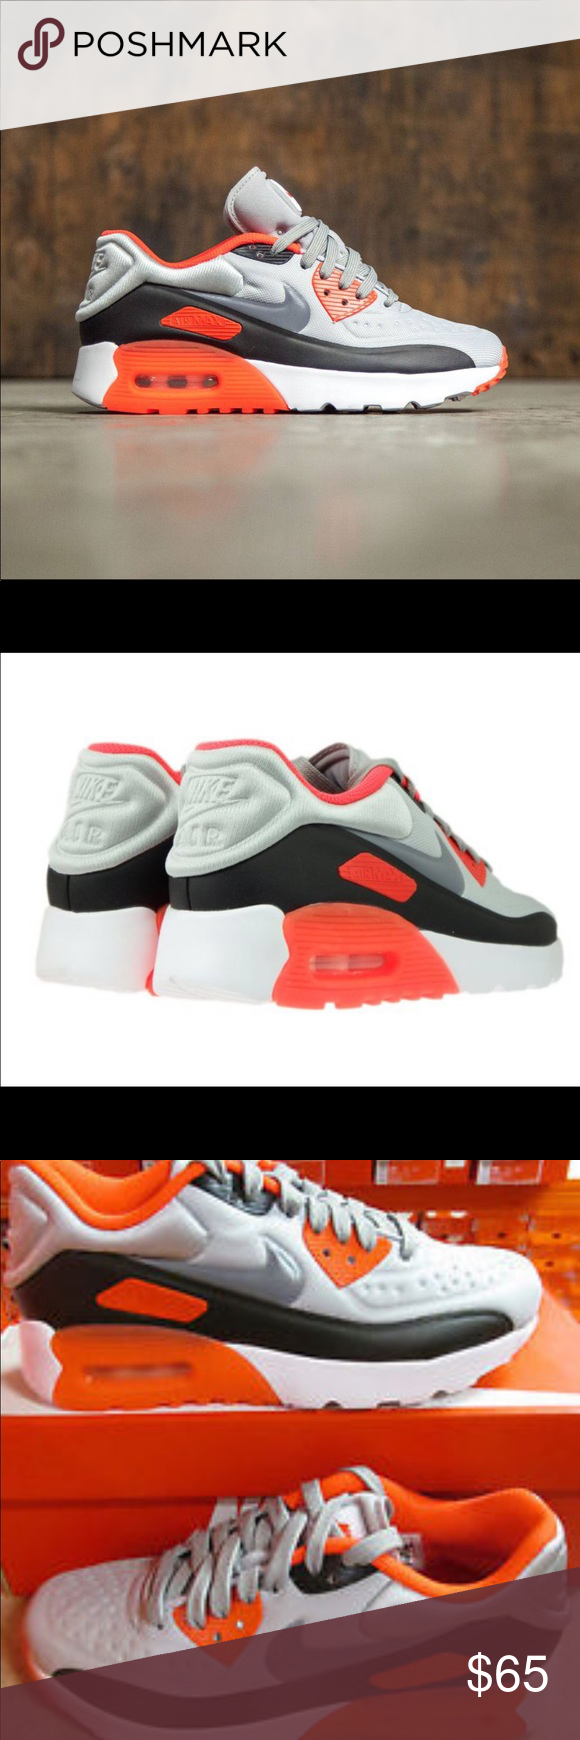 quality design 3a0d3 5a41b Nike Air Max 90 Ultra SE (GS) Youth Size 4Y W 5.5 Nike Air Max 90 Ultra SE ( GS) Youth Size 4Y Women Size 5.5 New with Box Shoes Sneakers